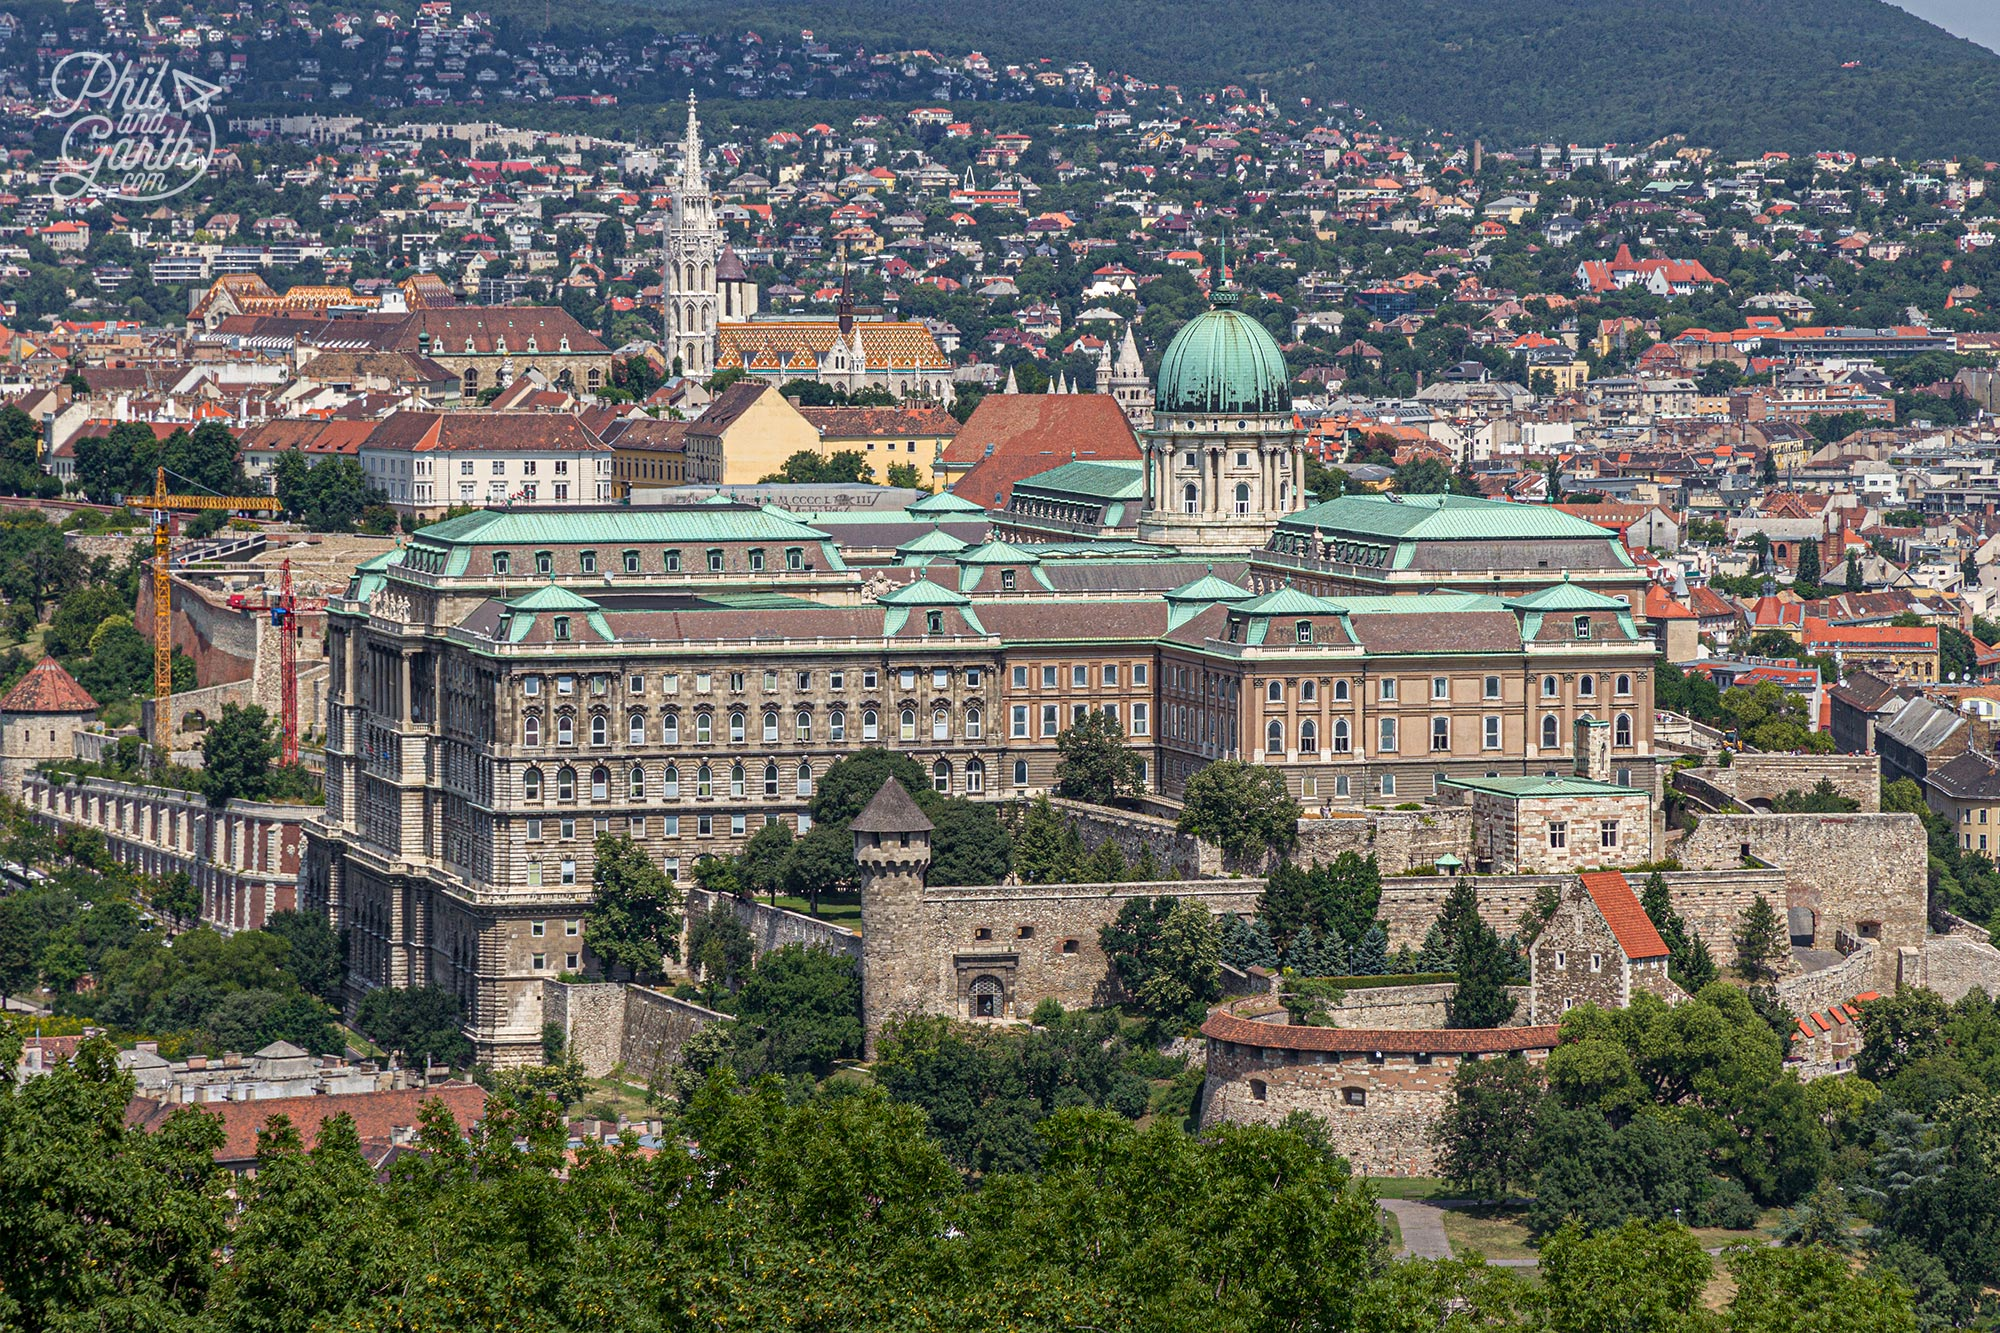 The Buda Castle is a UNESCO World Heritage Site